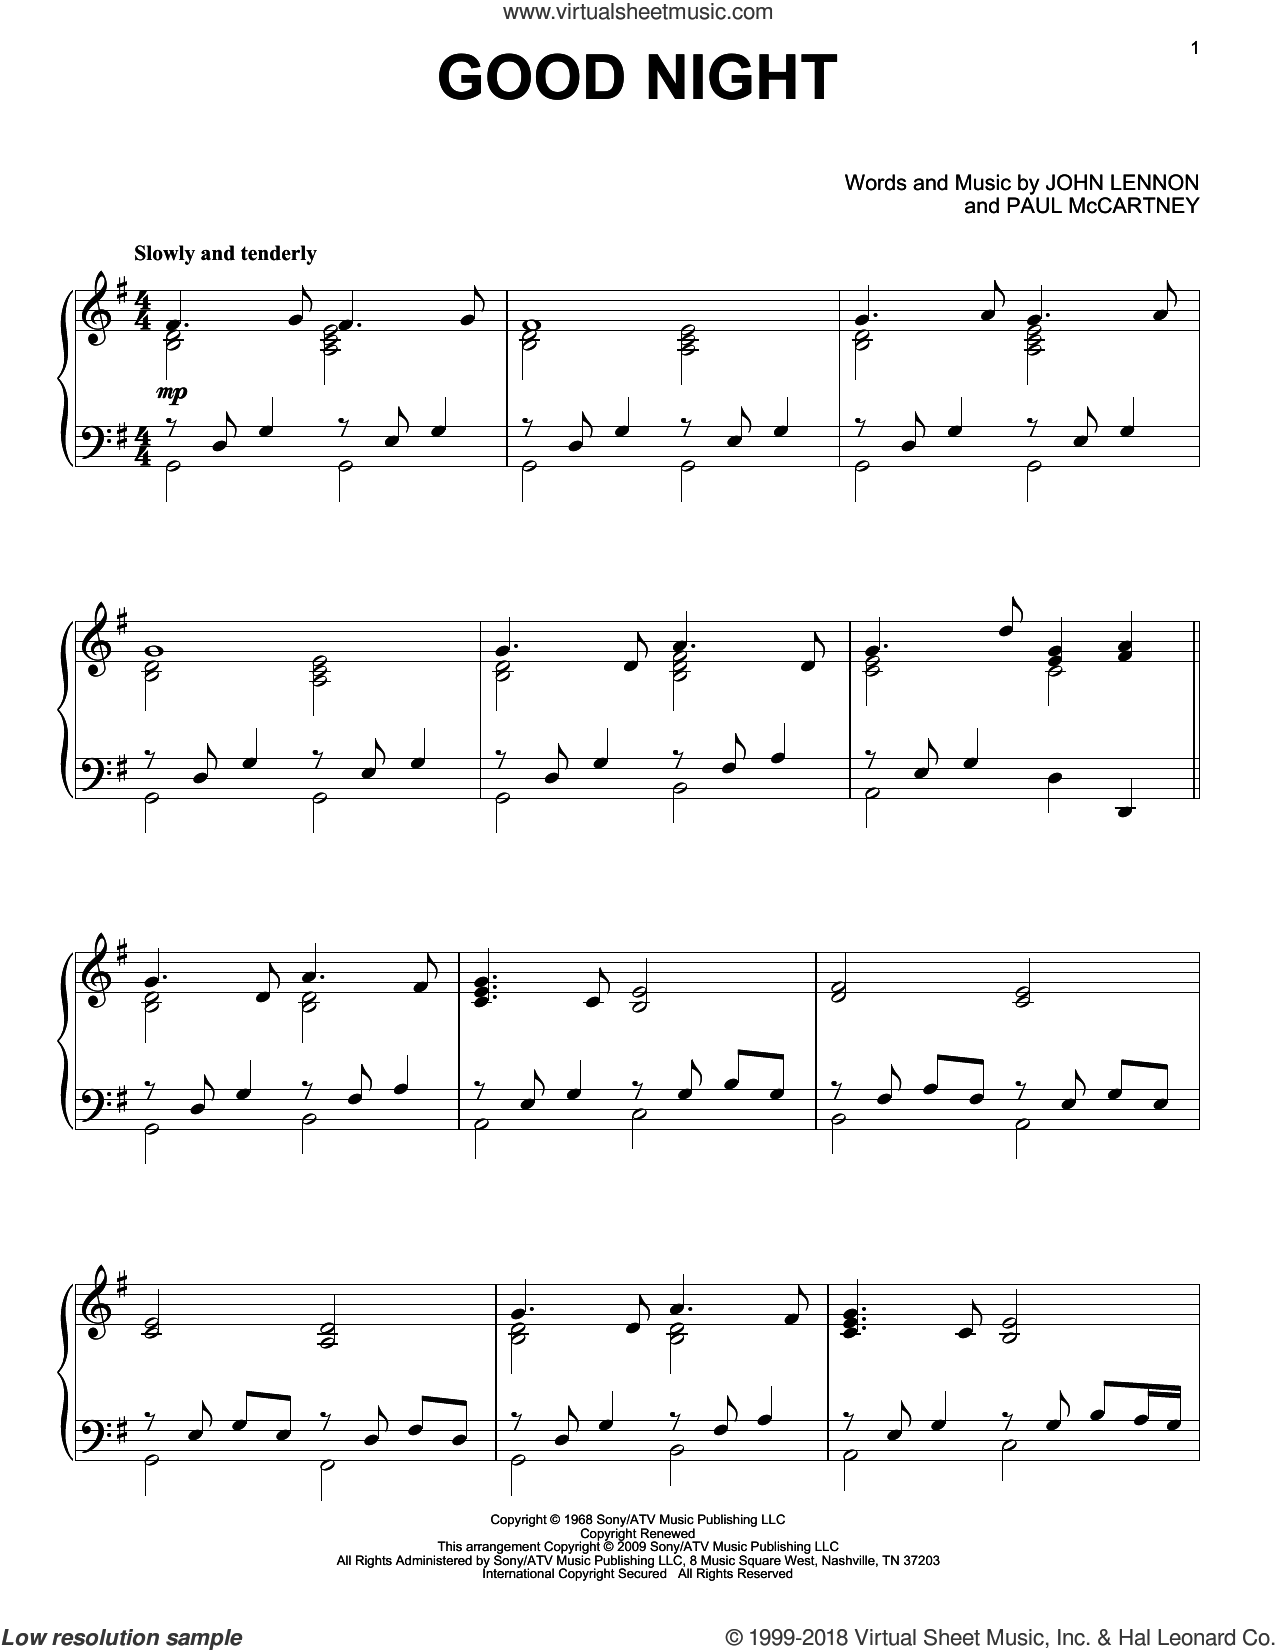 Good Night sheet music for piano solo by The Beatles, John Lennon and Paul McCartney, intermediate skill level